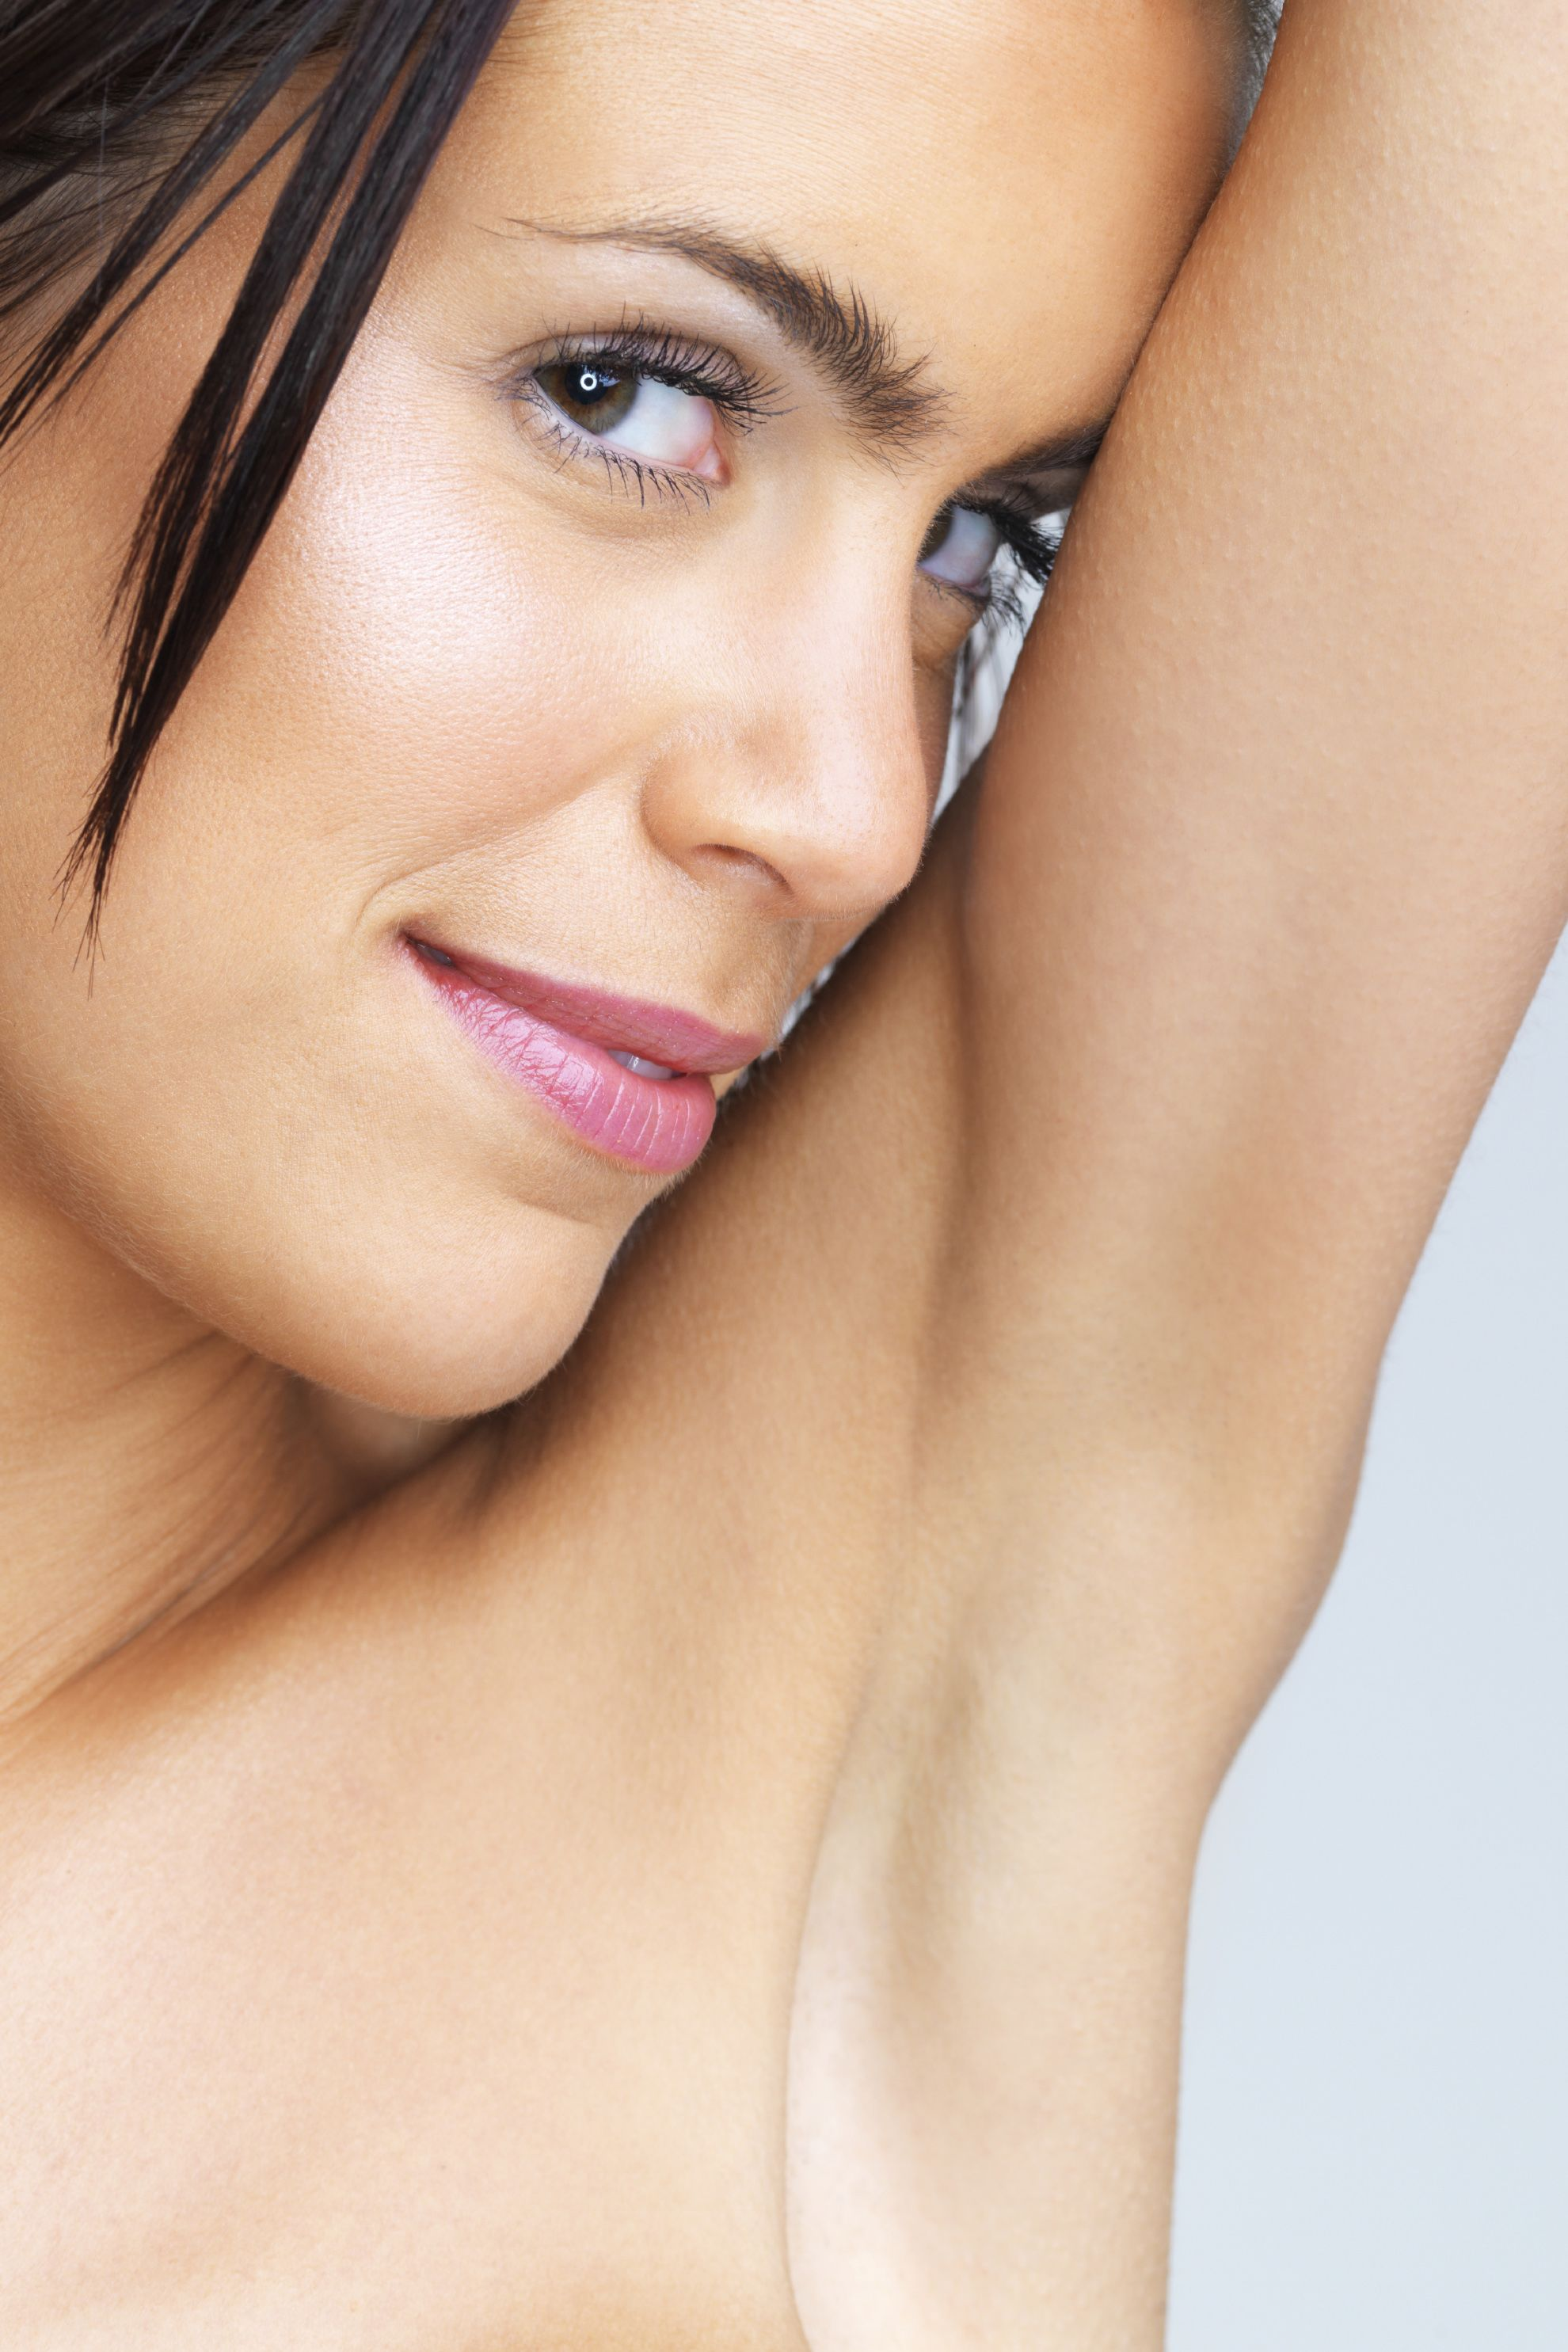 A woman with hairless underarms